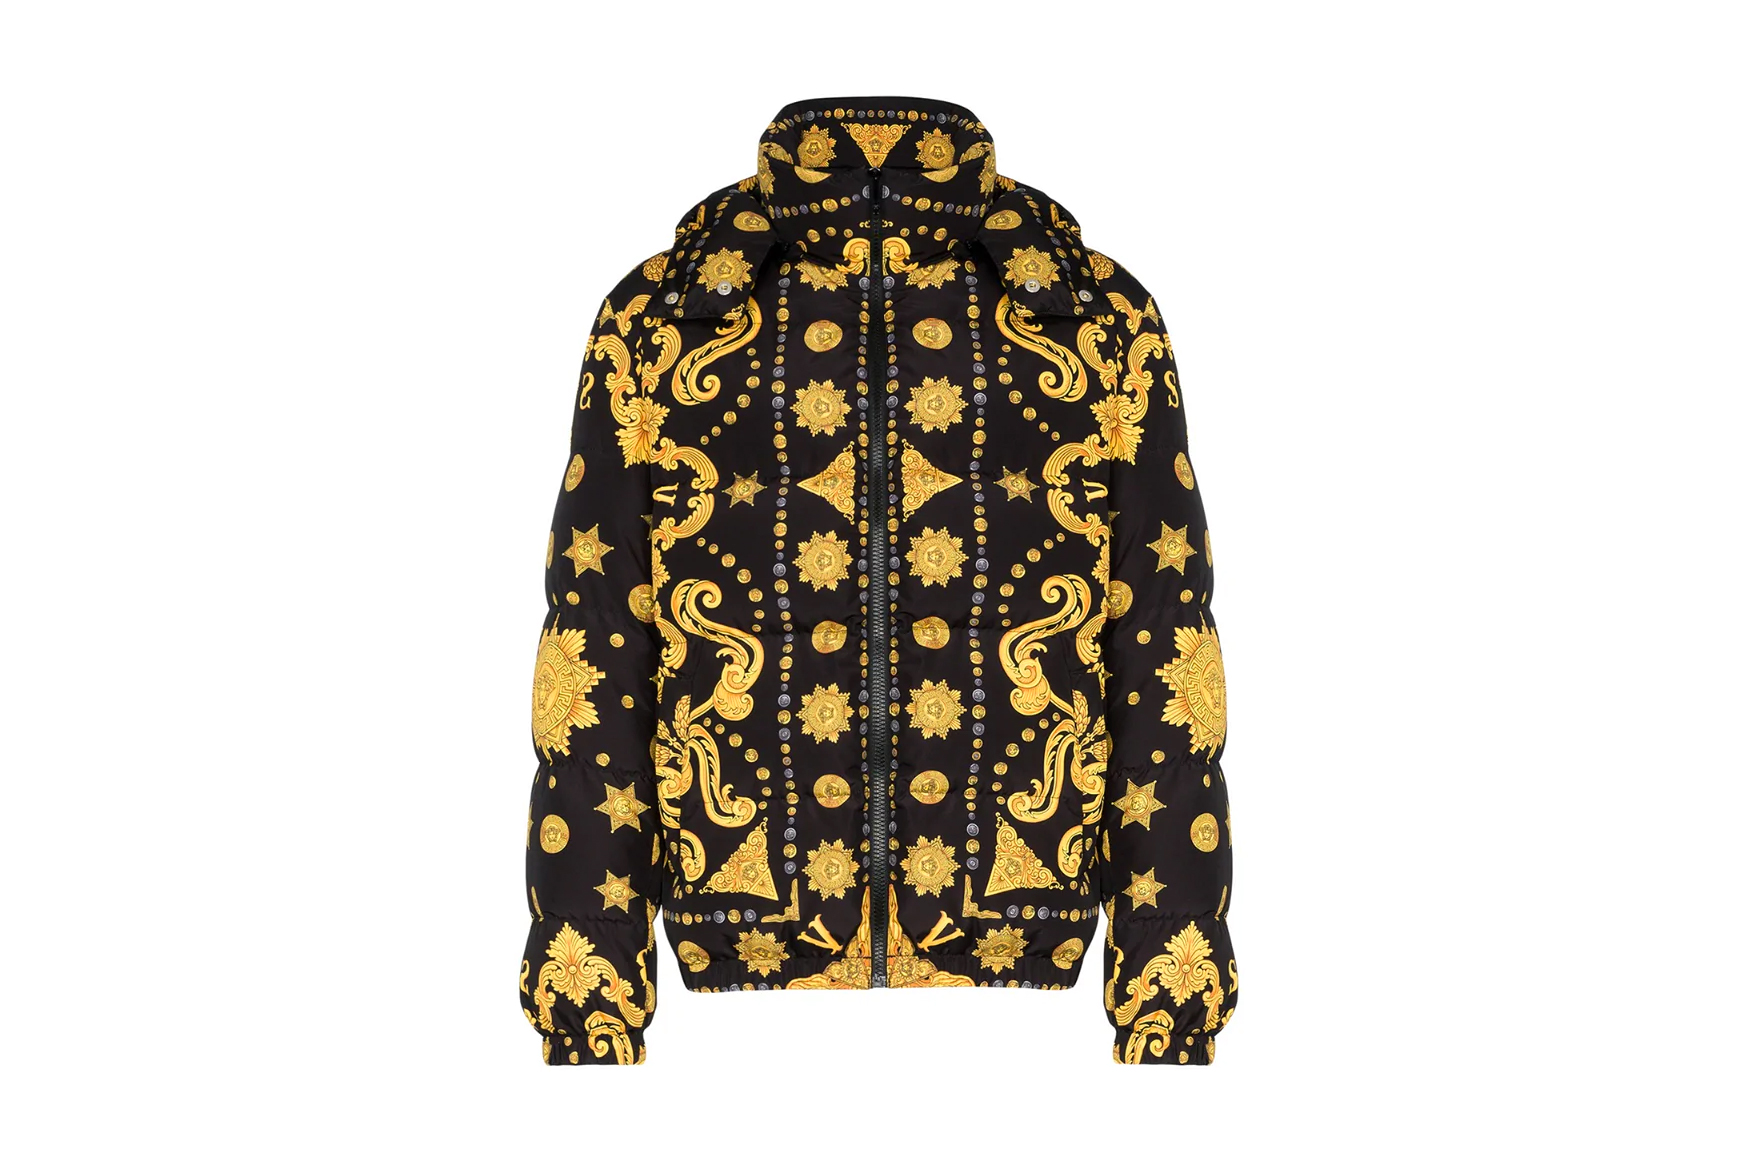 Versace Baroque-Print Puffer Jacket Release Jackets Browns Fashion BROWNS Italian Outerwear